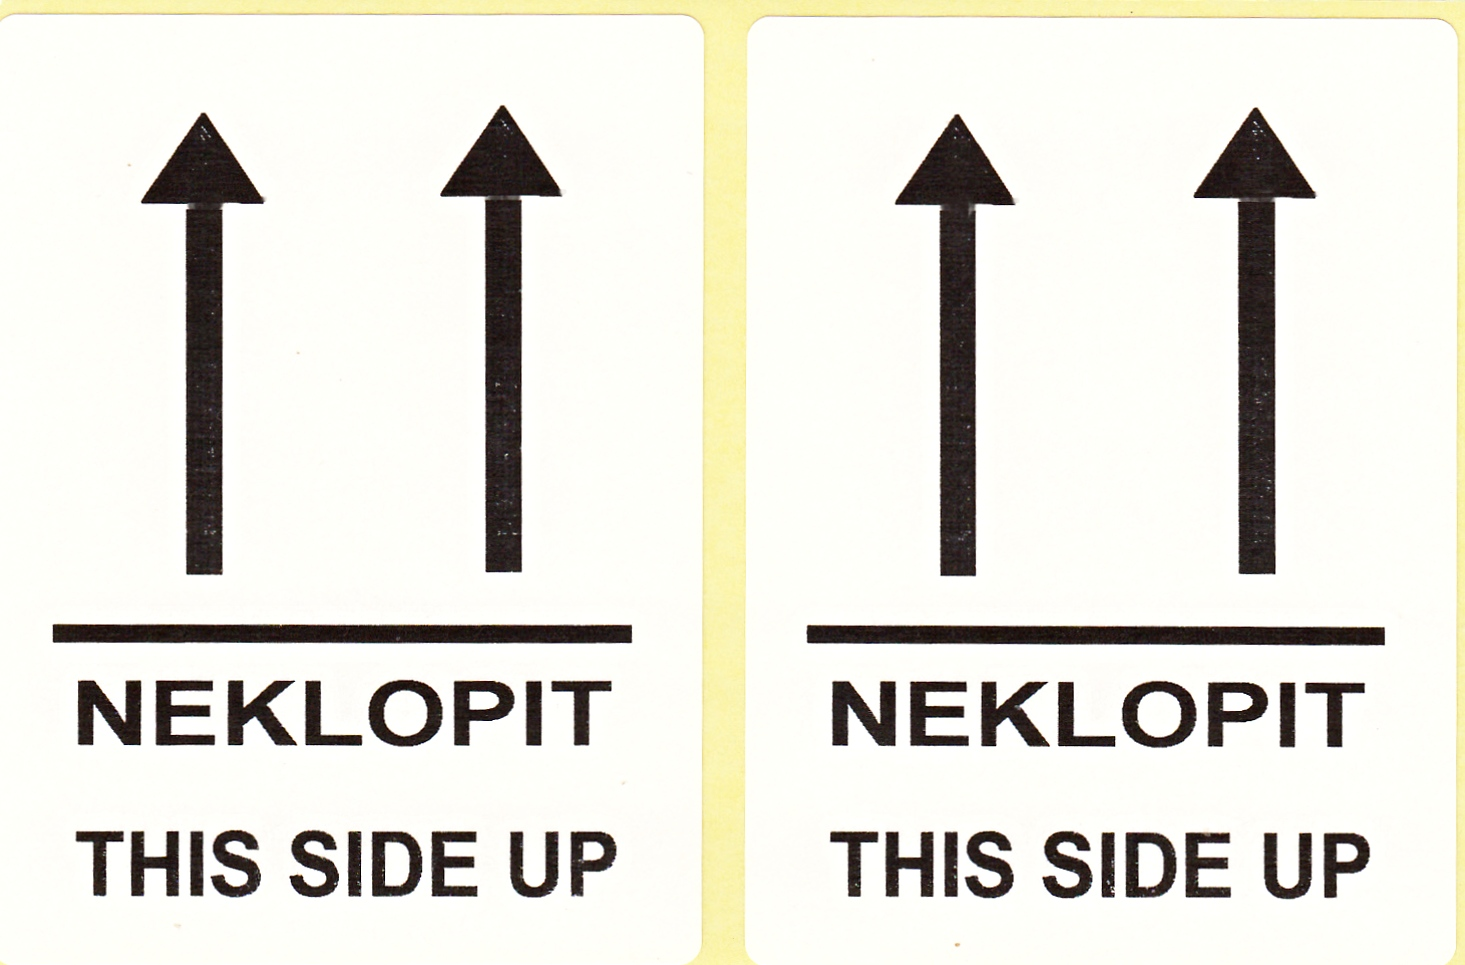 """NEKLOPIT - THIS SIDE UP"" - etikety 80 x 60  mm - bílé"